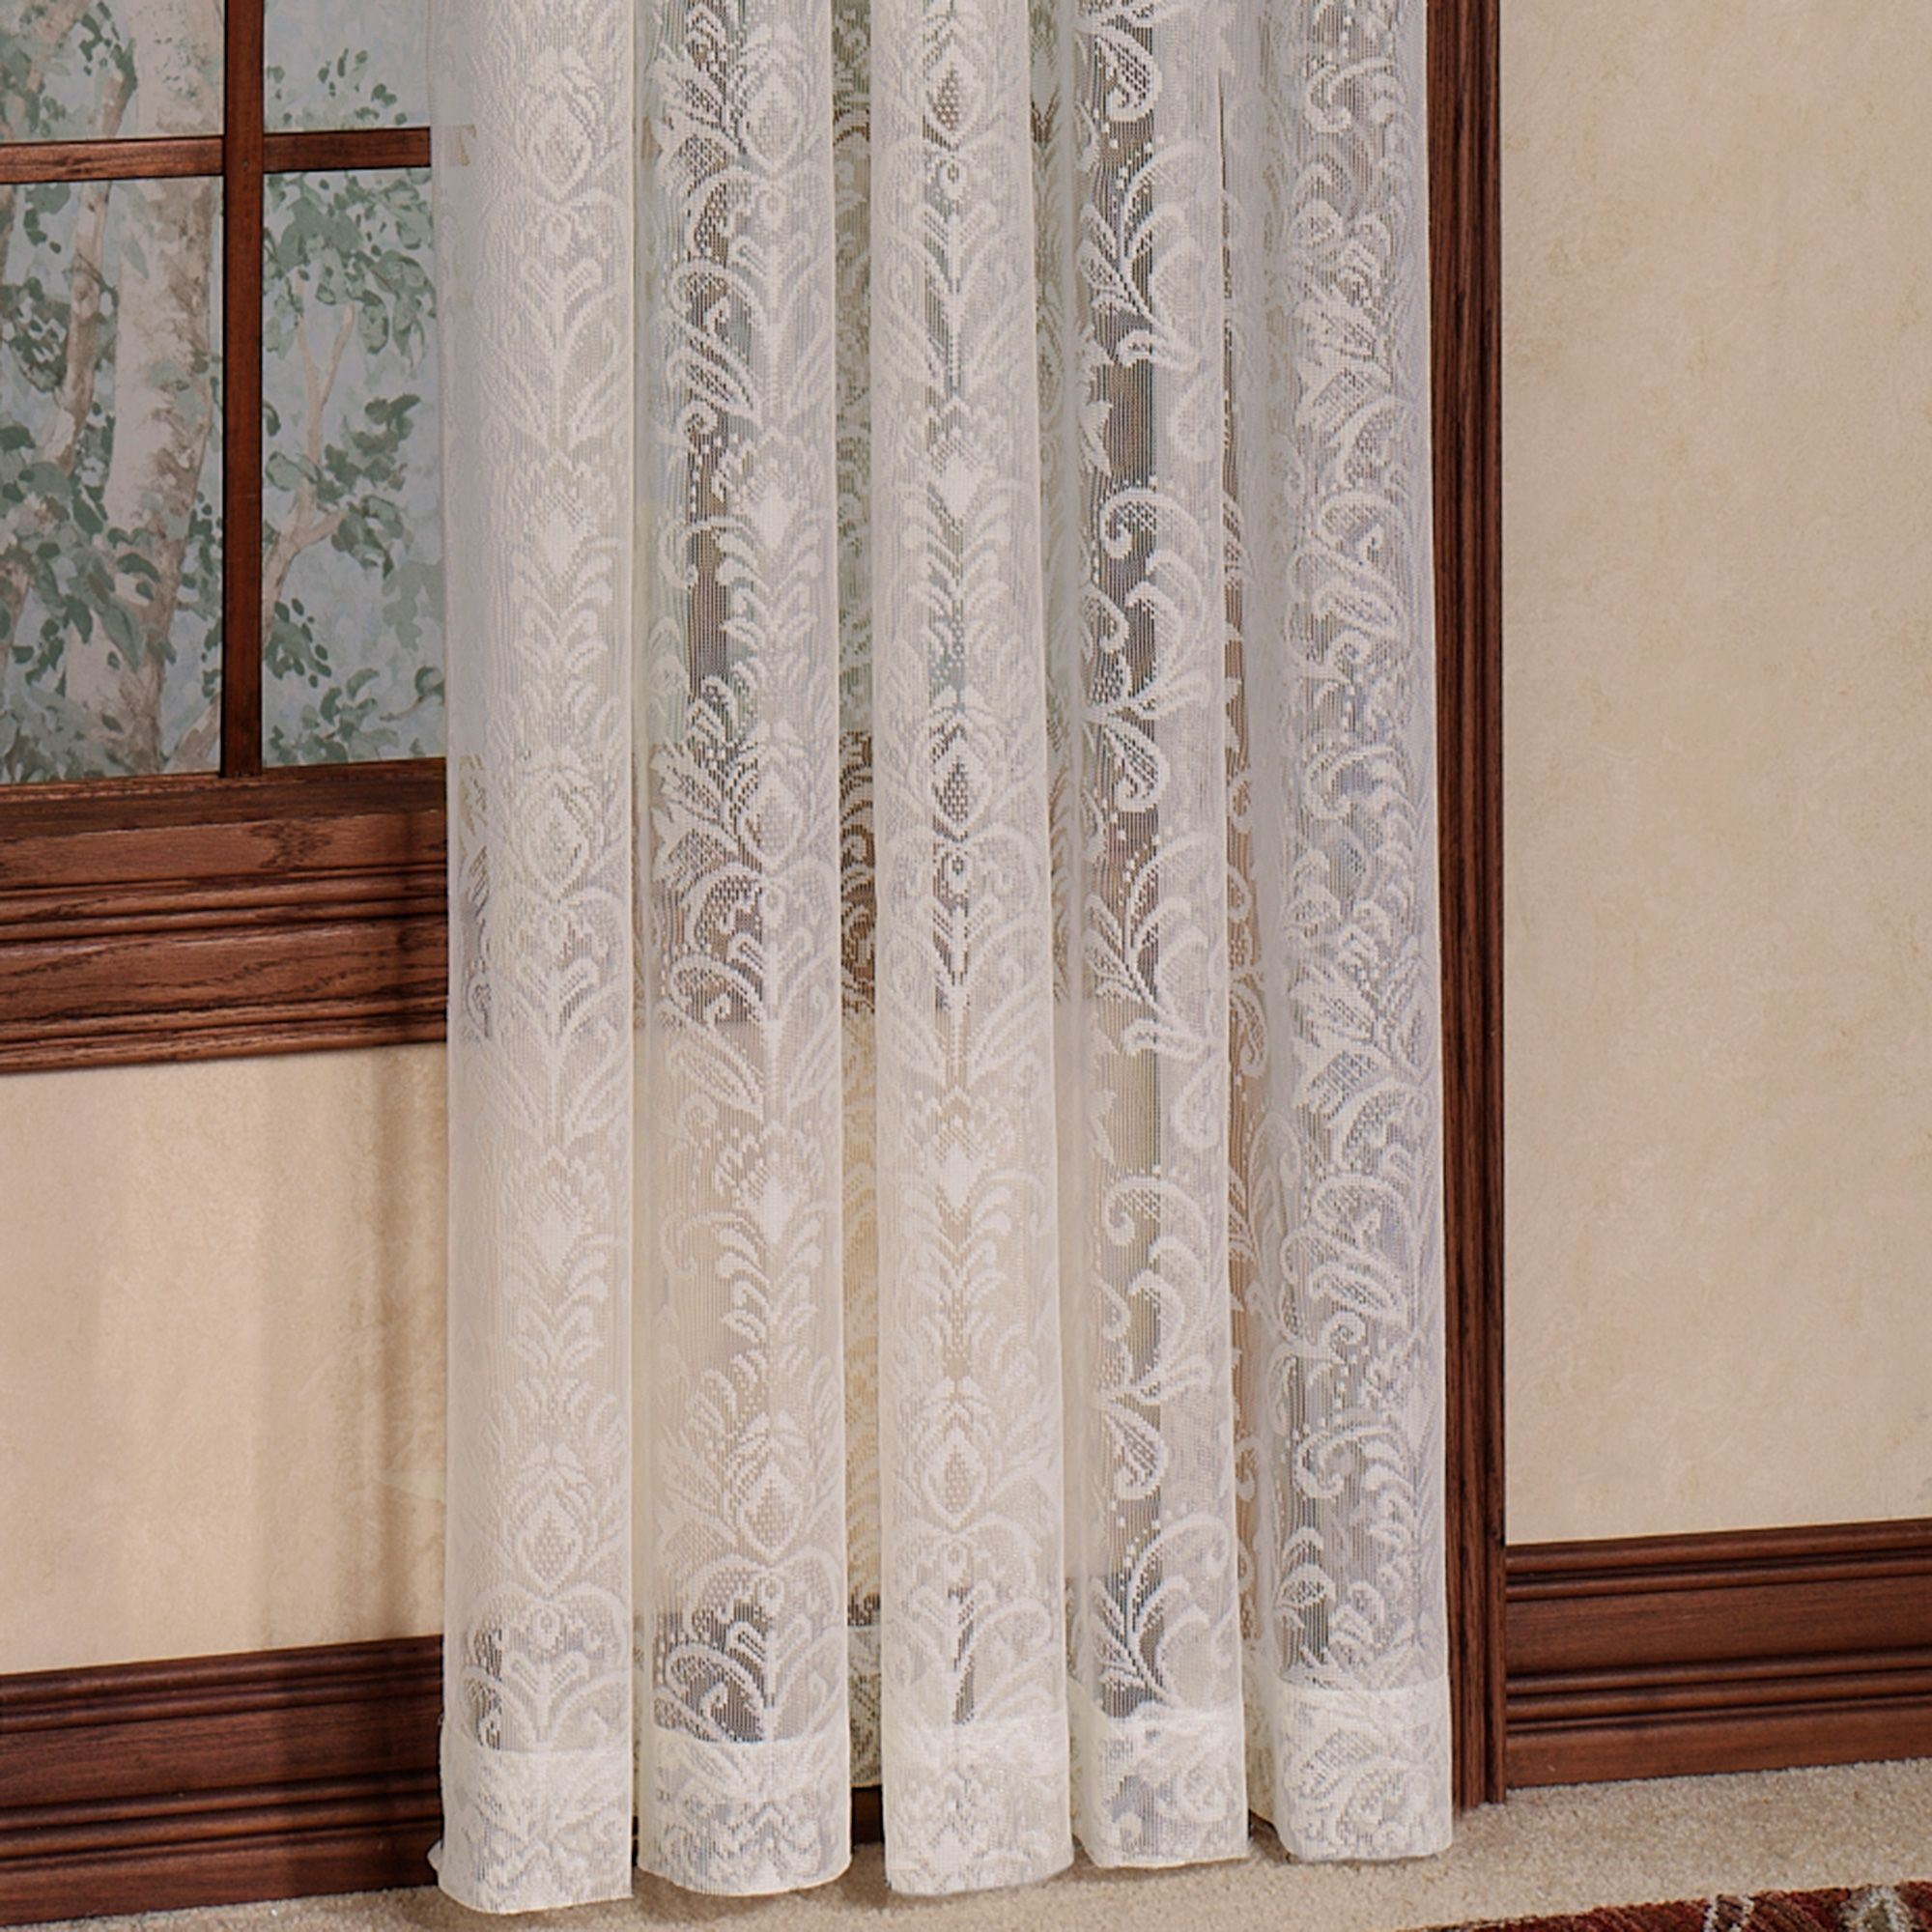 inspiration lewistempting your french as curtains panel amusing decor uk john homesfeed with improvement window tempting panels home shades curtain lace